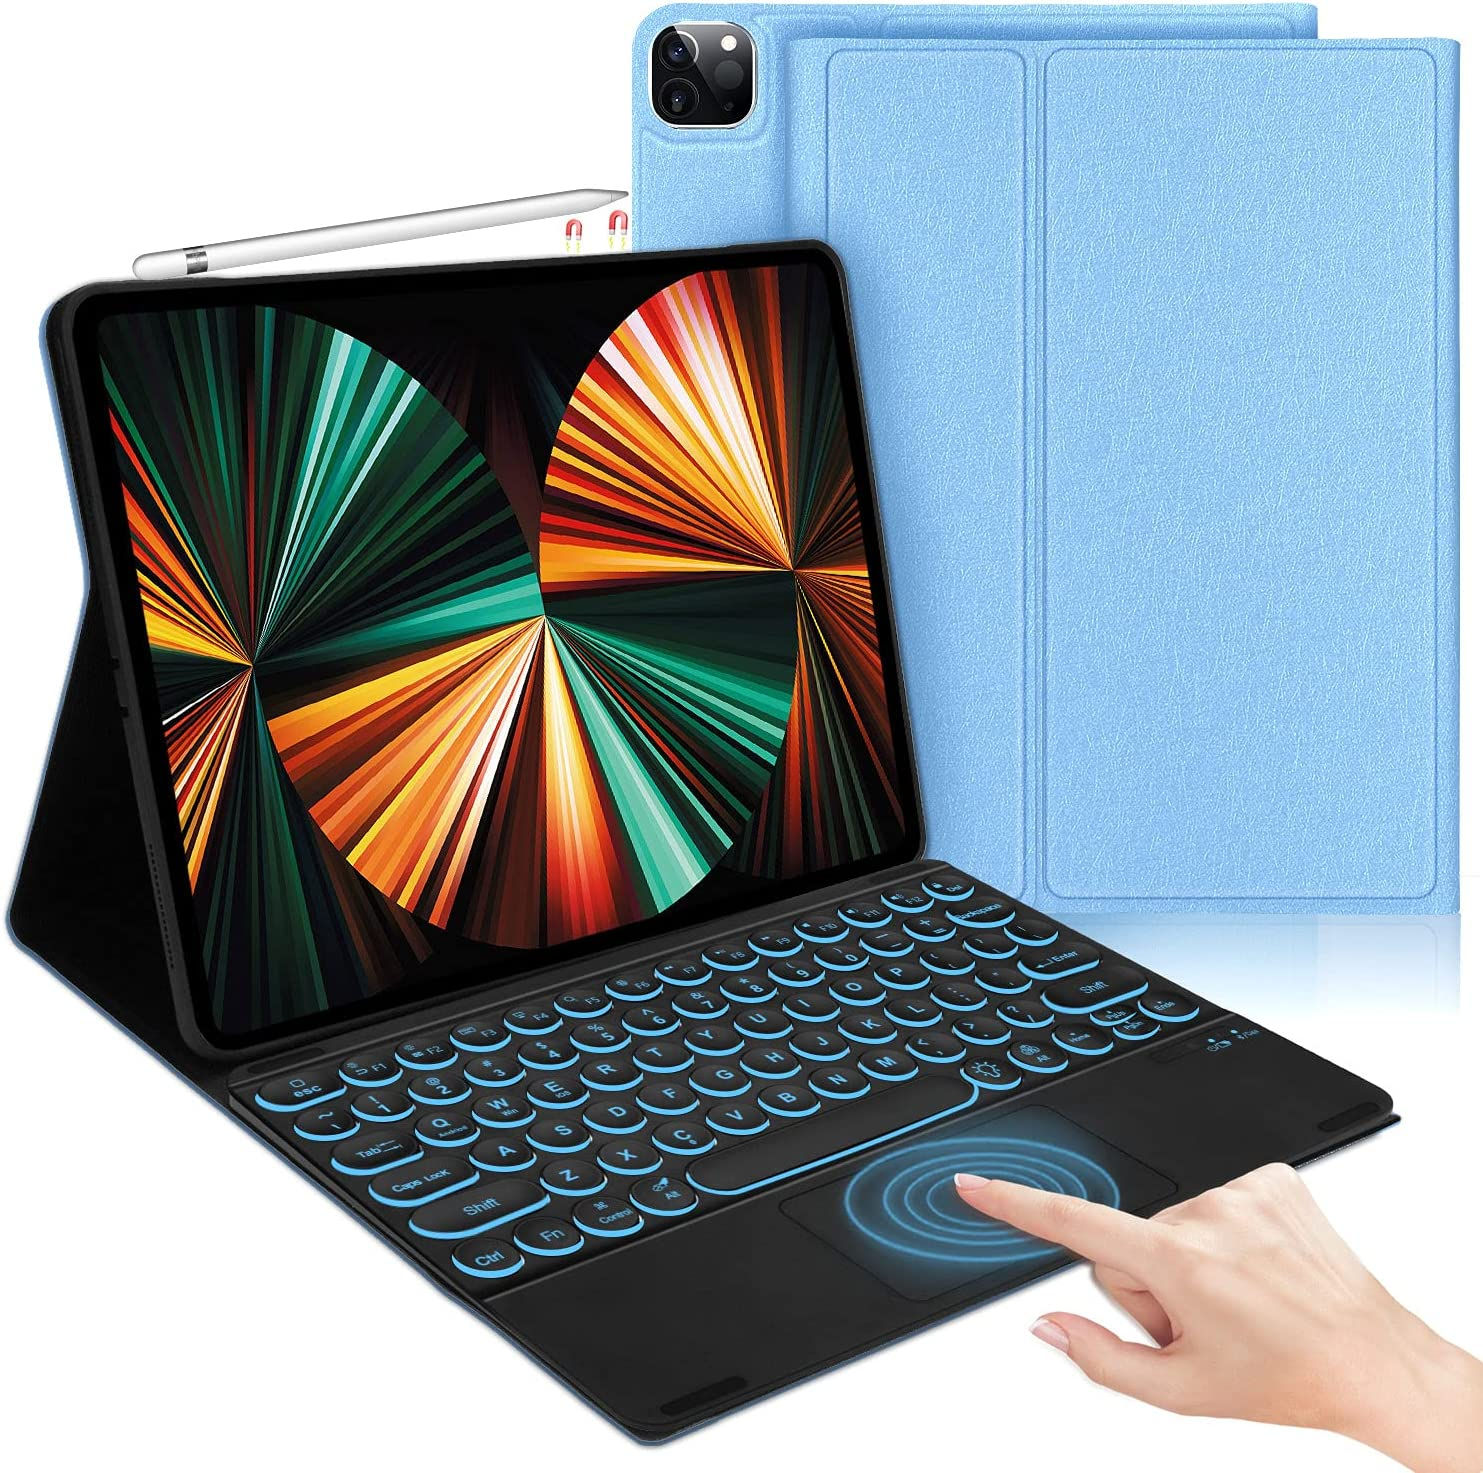 iPad Pro 12.9 2021 Case with Keyboard, Compatible with iPad Pro 12.9 inch 5th / 4th / 3rd Generation - Smart Trackpad - Wireless 7 Color Backlit Keyboard - Smart Folio Case for iPad Pro 12.9, Blue